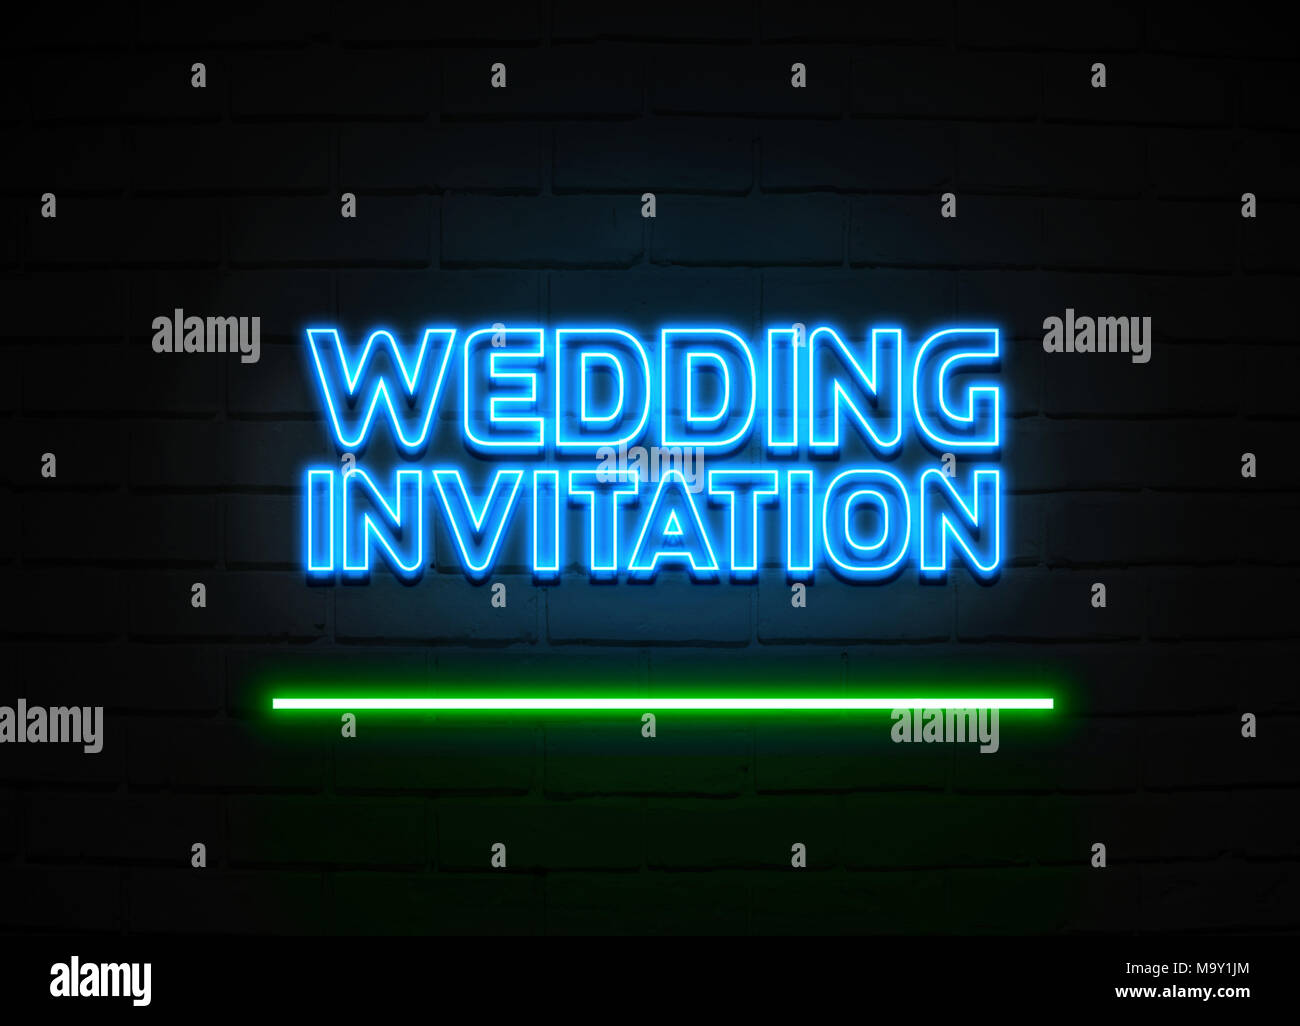 Wedding Invitation neon sign - Glowing Neon Sign on brickwall wall - 3D rendered royalty free stock illustration.